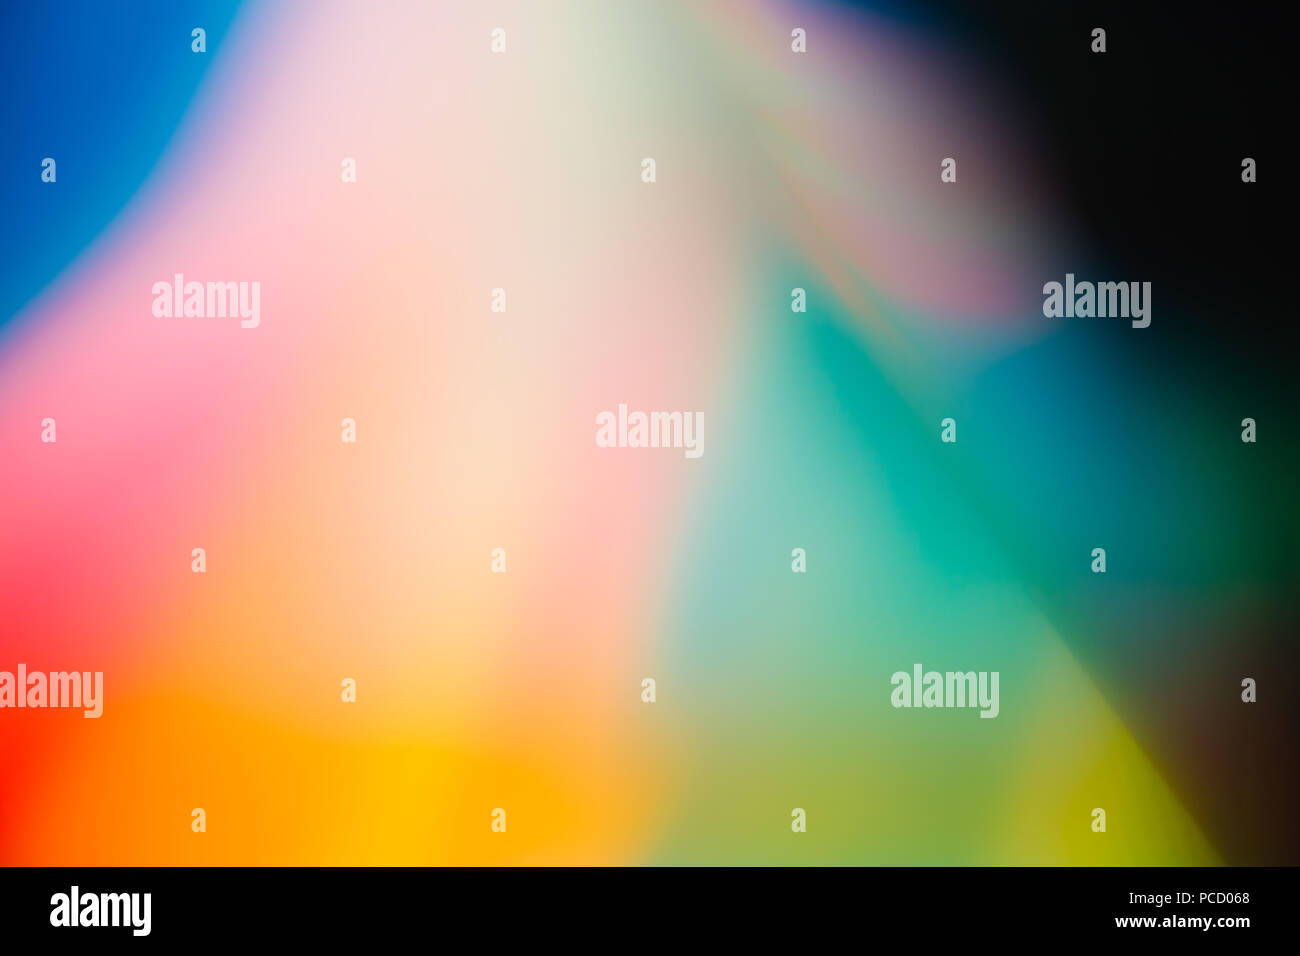 Abstract Photograph Blurred Rainbow Colour - Stock Image